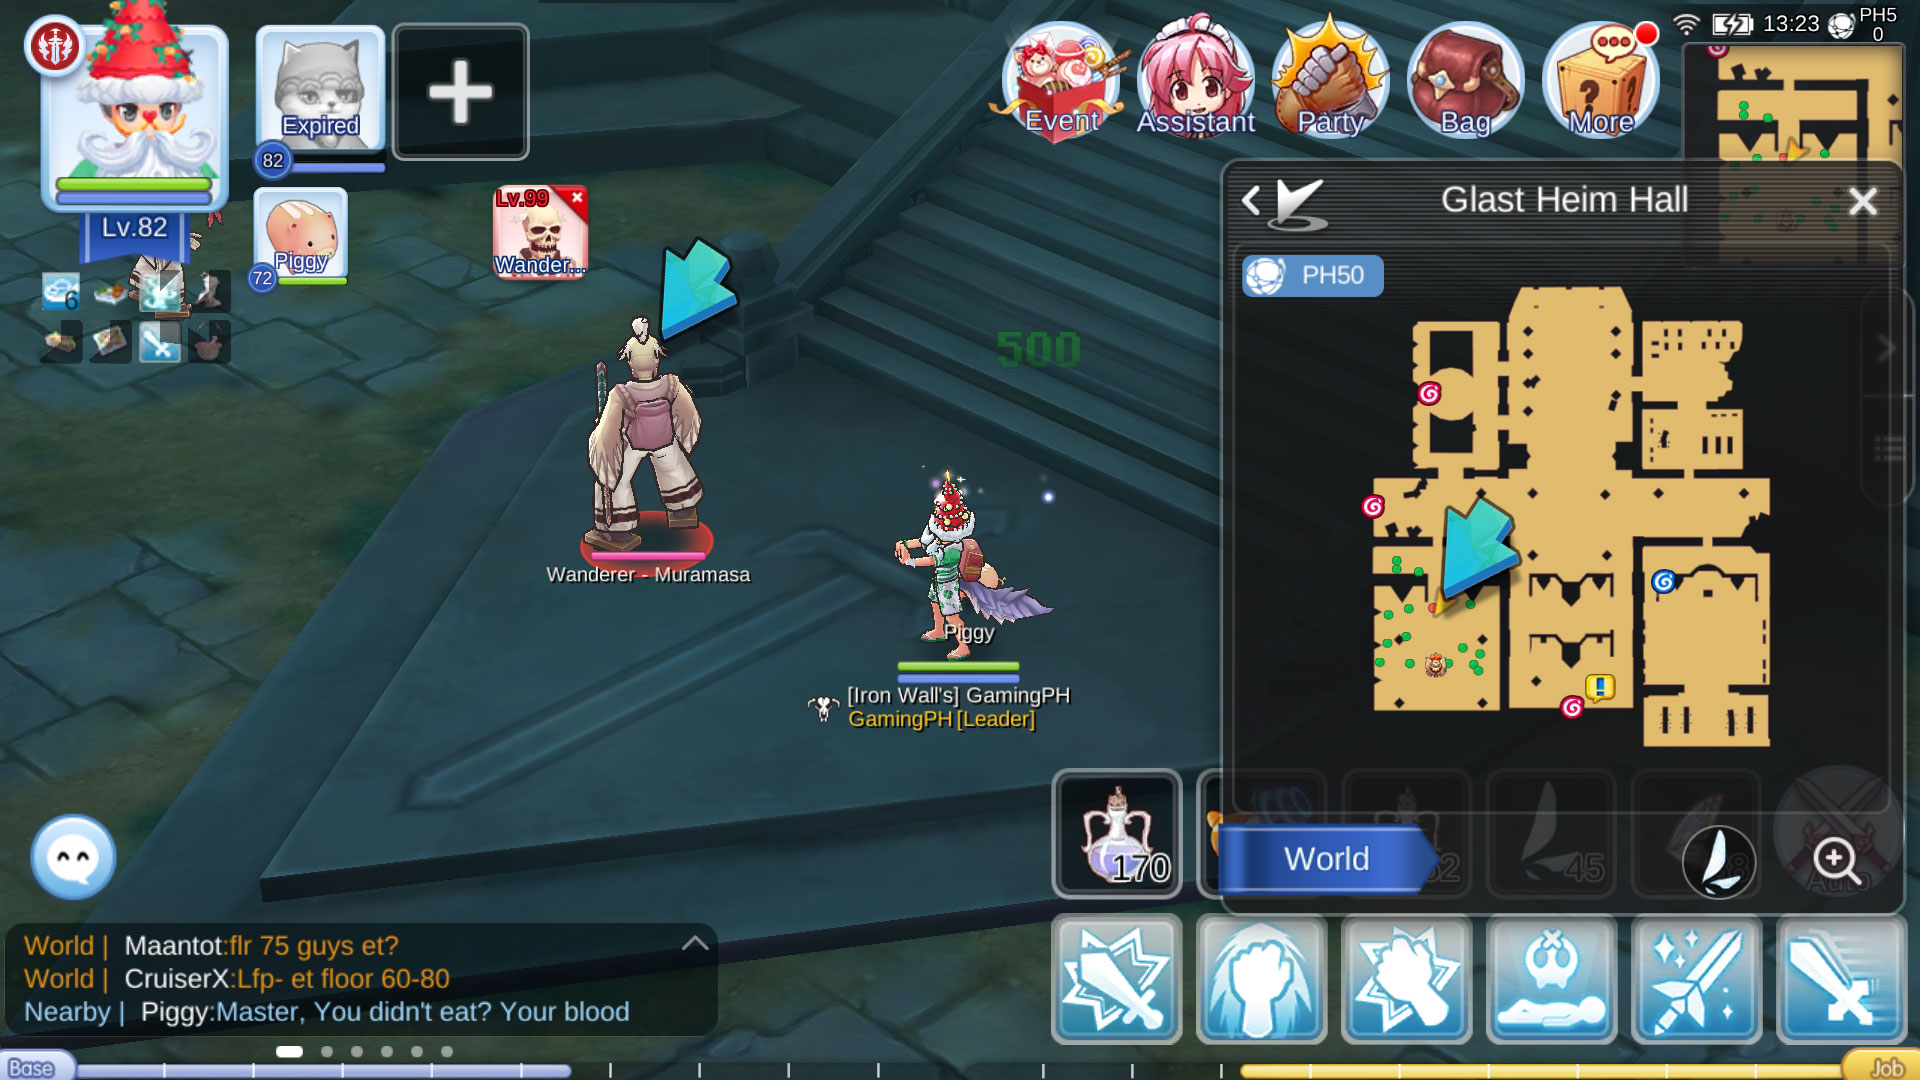 How to Get Life Sword Quest (Mask of Darkness), Glast Heim in